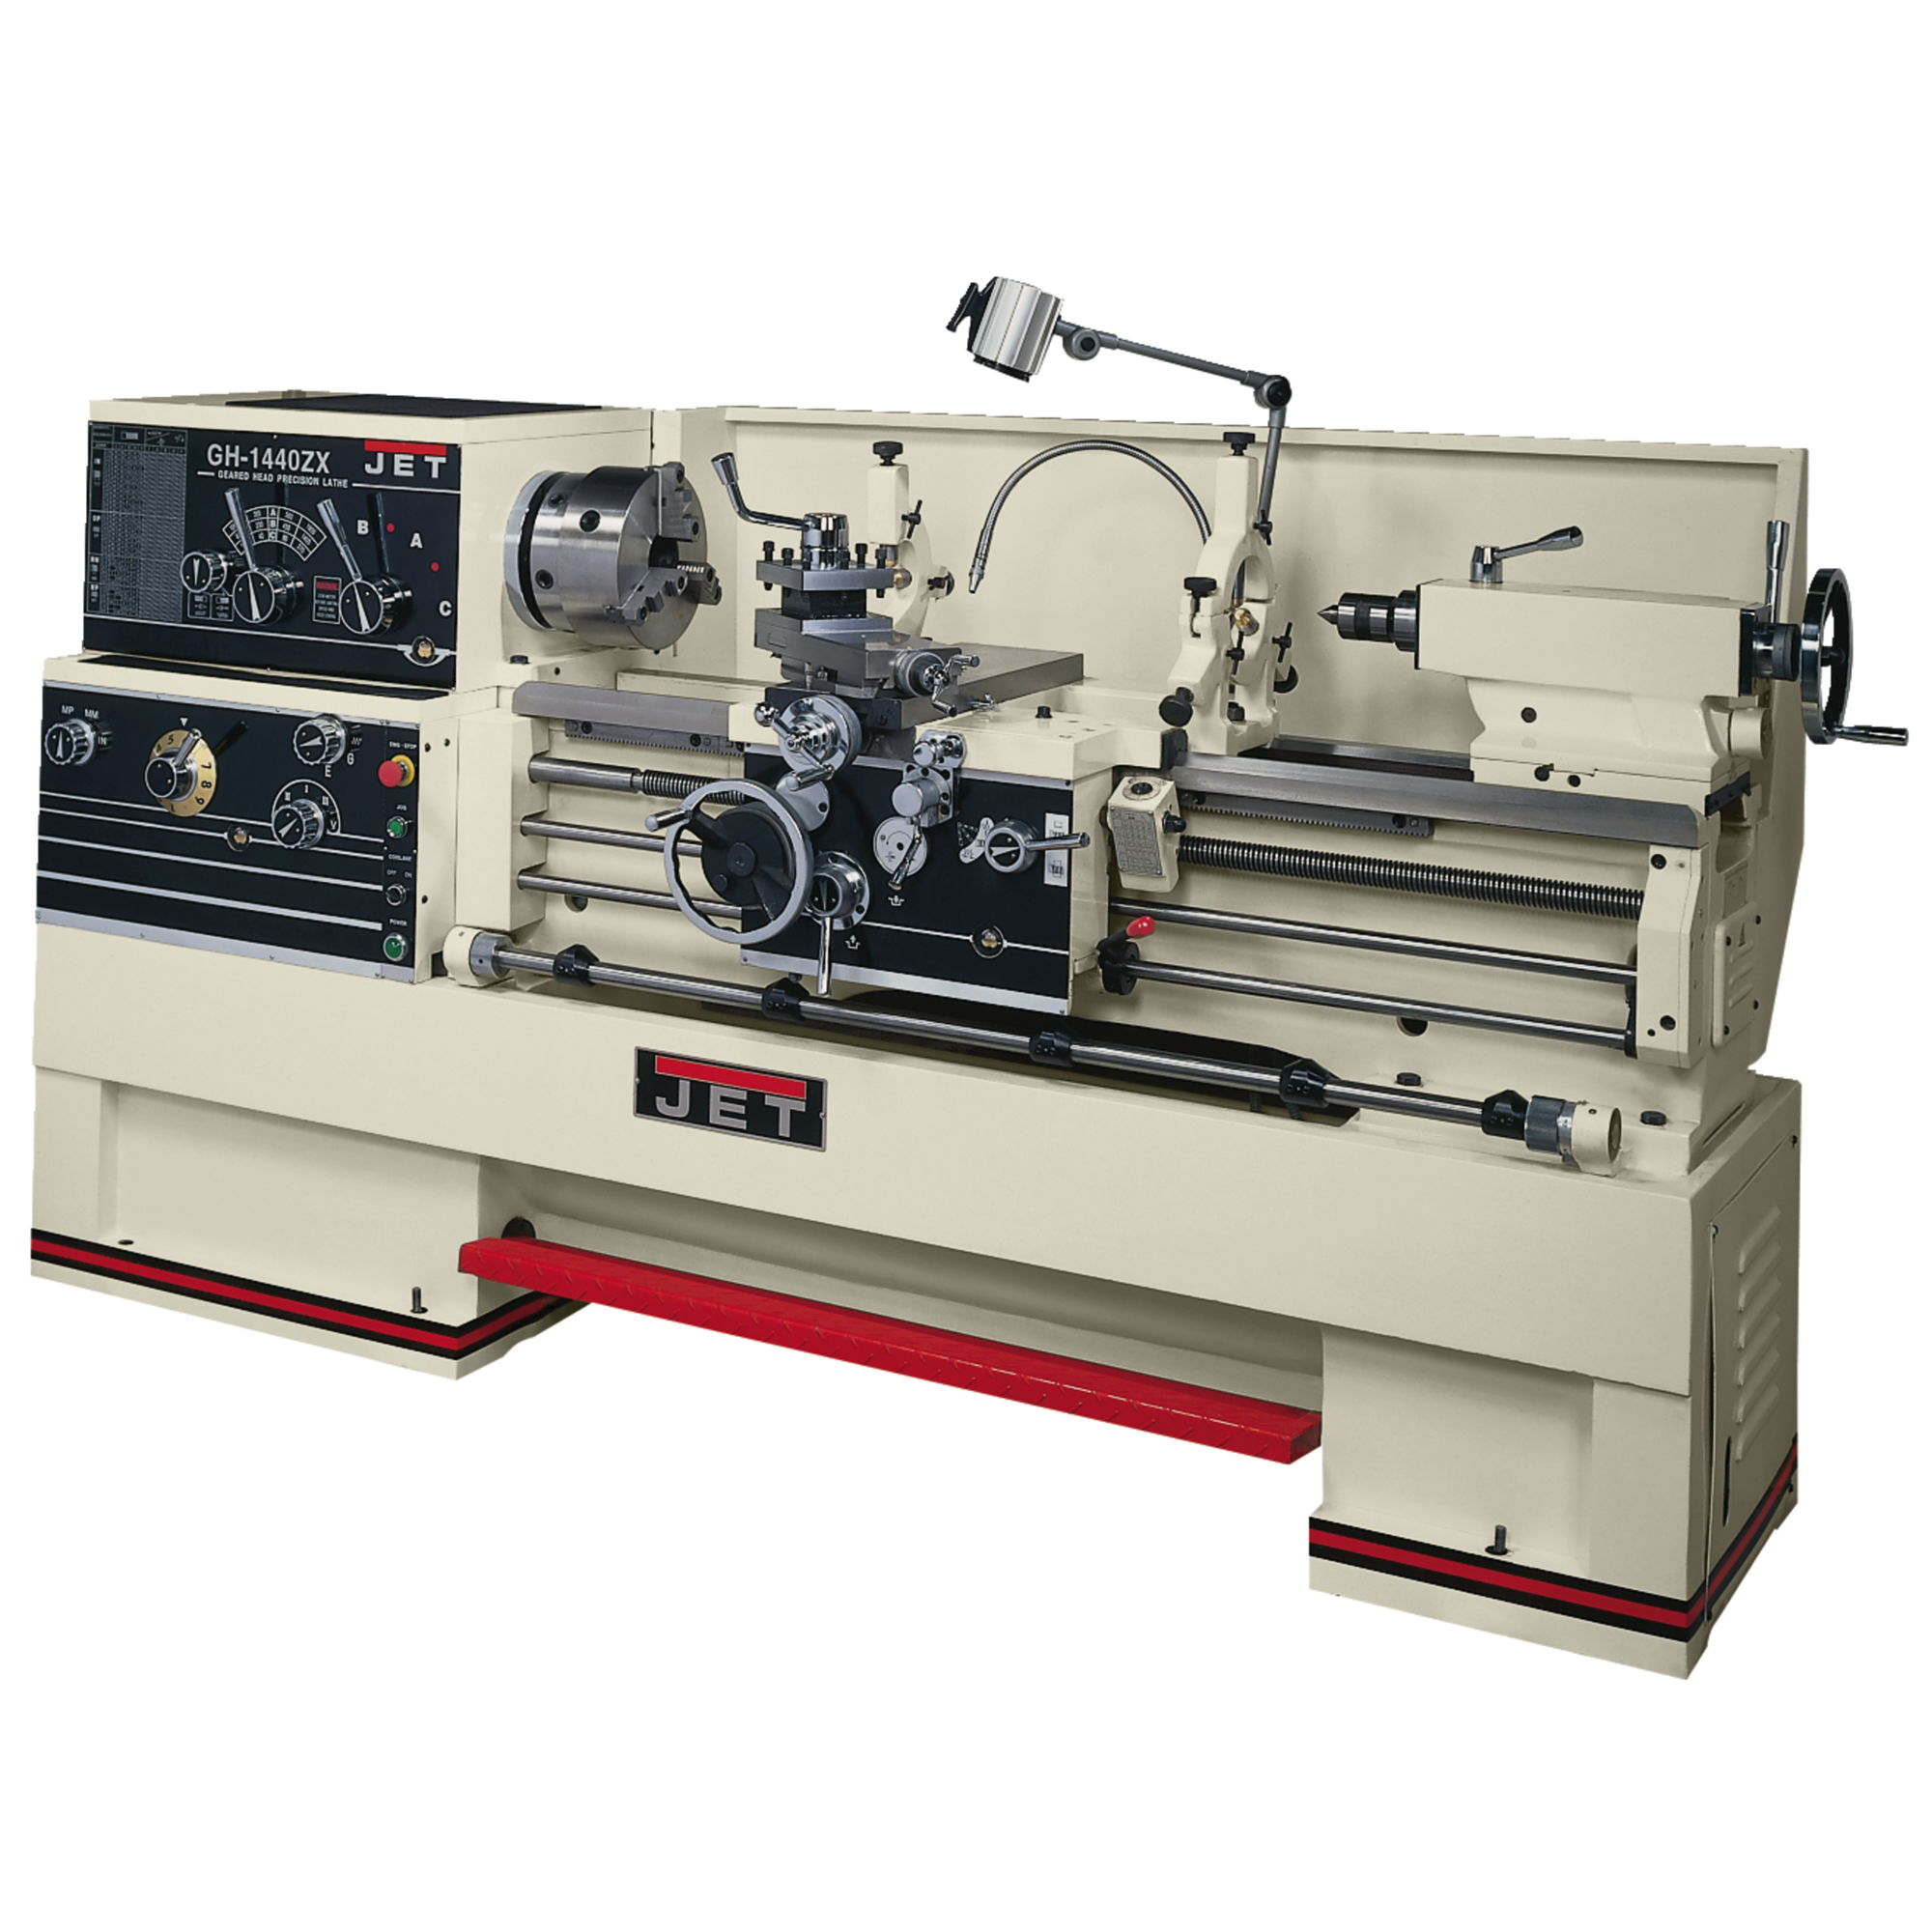 JET GH-1440W-1 1Ph Geared Head Engine Lathe With Newall DP700 DRO